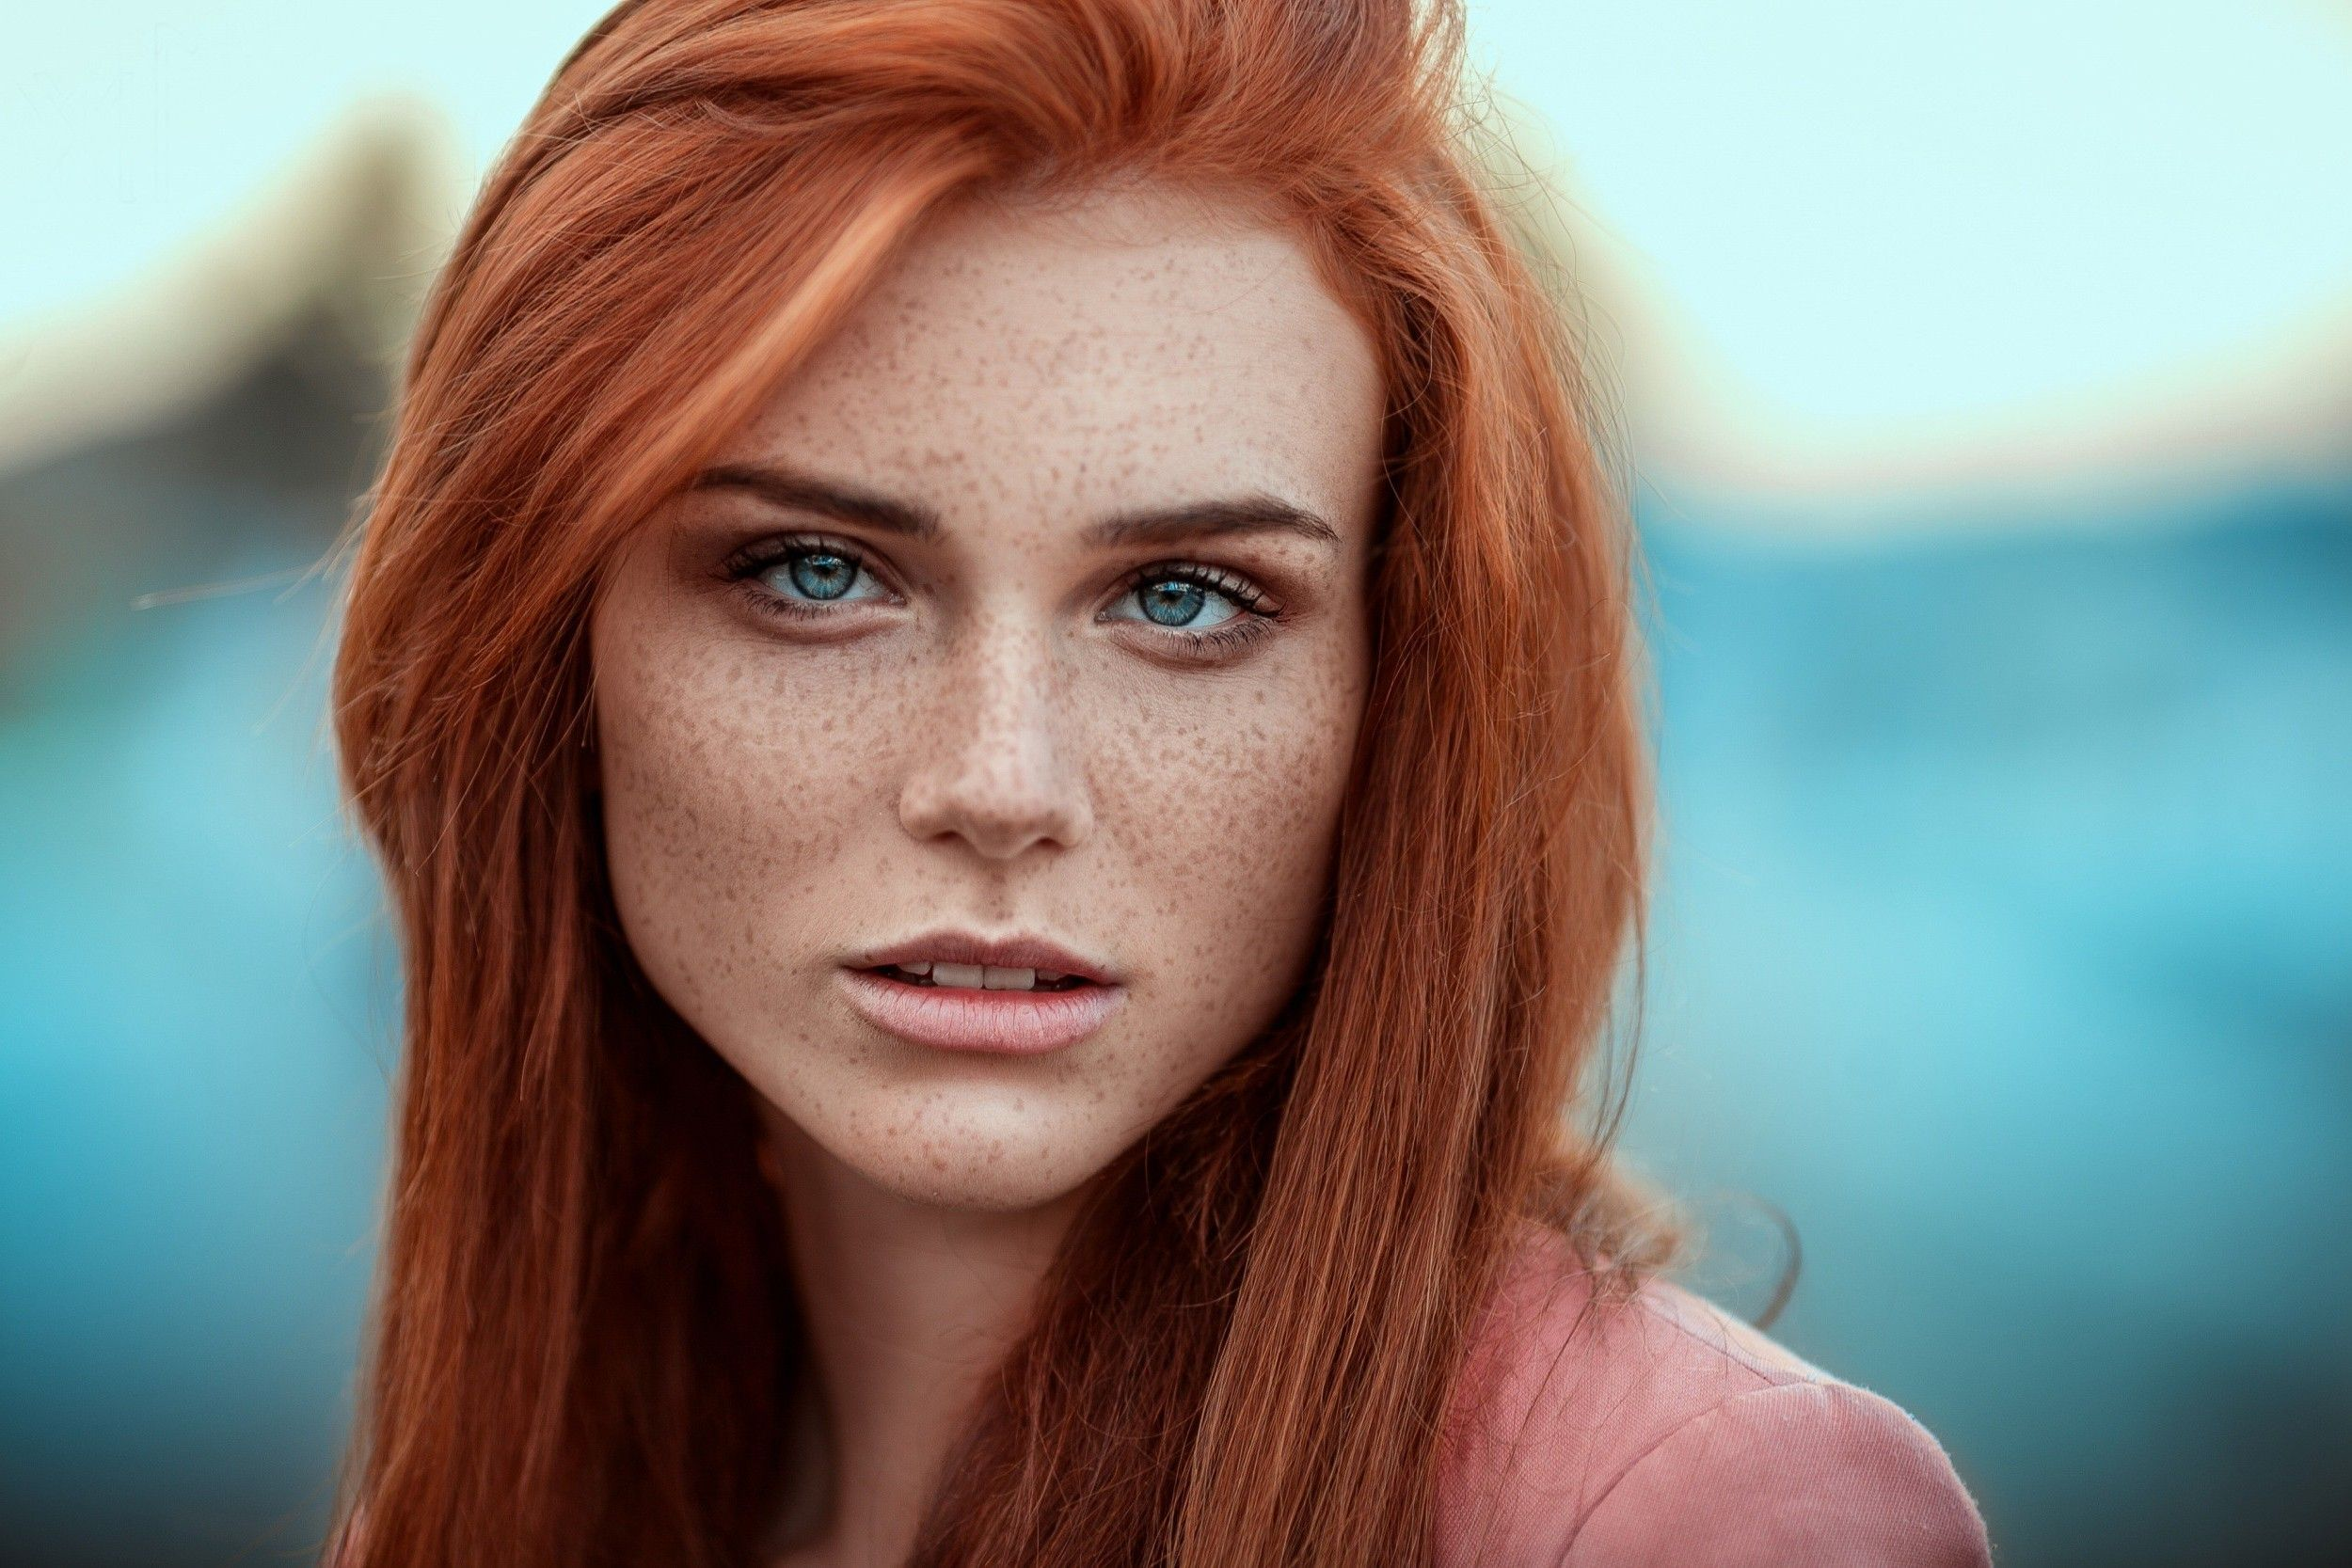 Women Blue Eyes Freckles Redhead Looking At Viewer Face Portrait